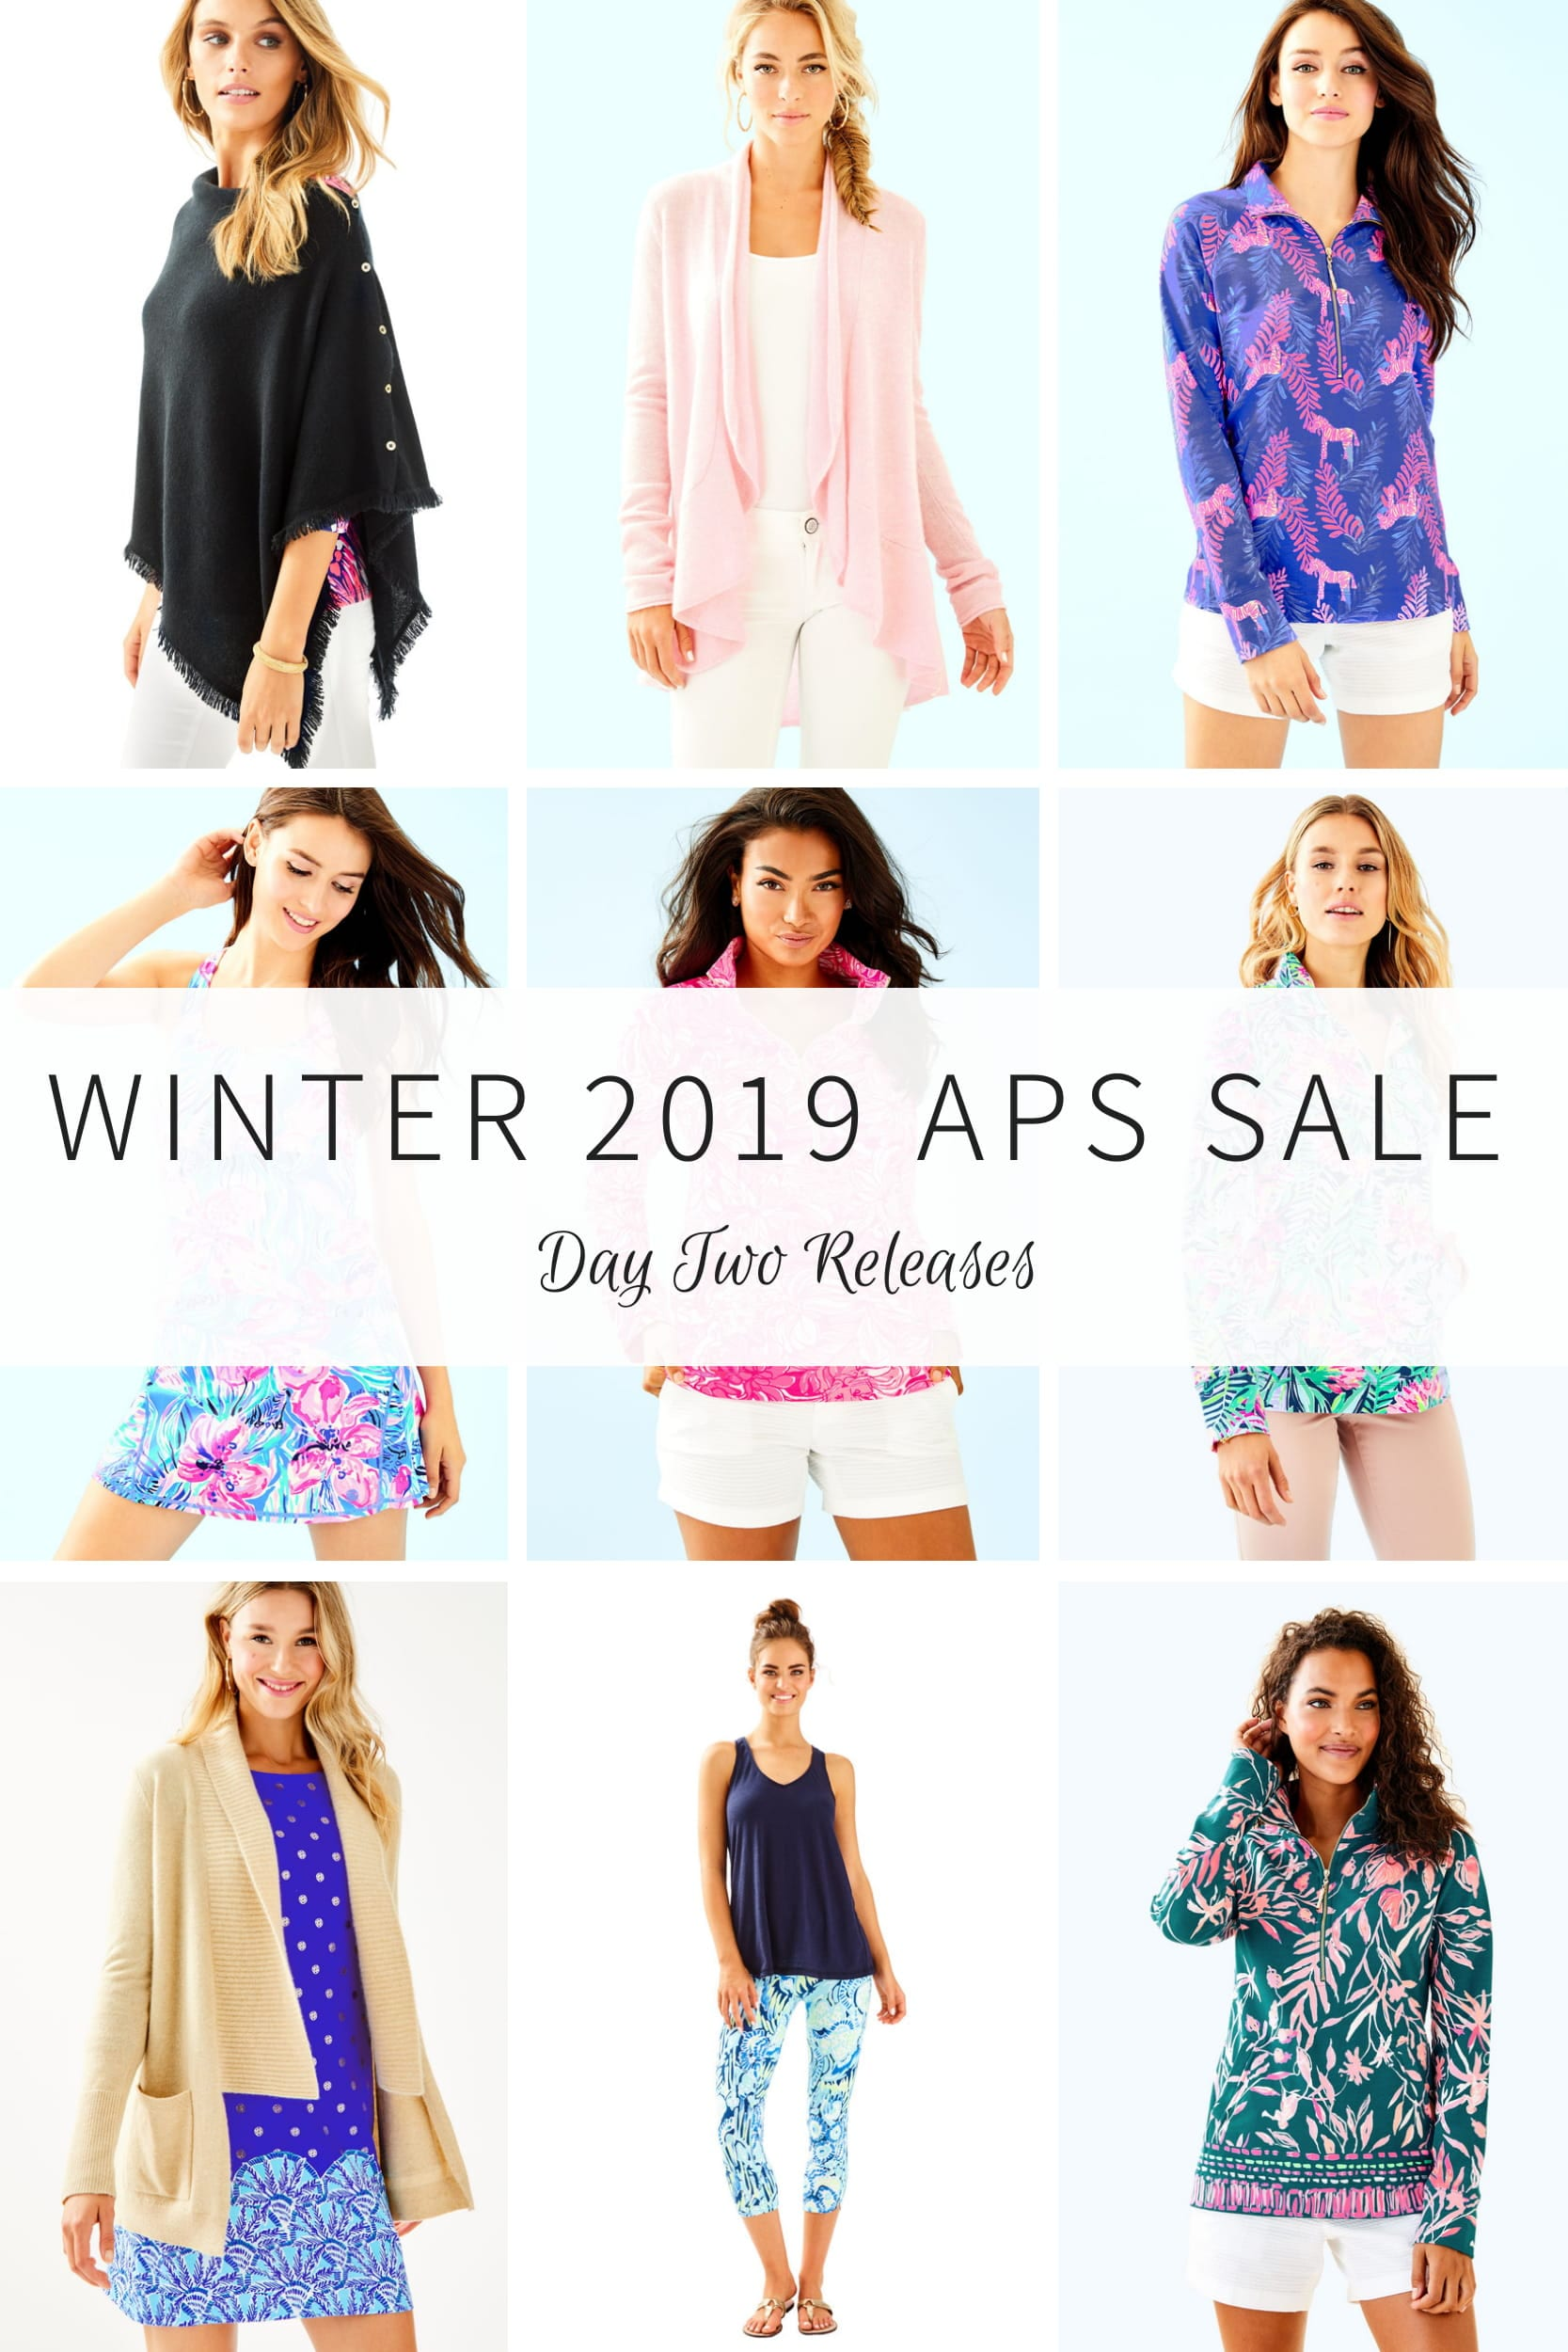 Lilly Pulitzer Winter APS 2019 Day 2 January 8